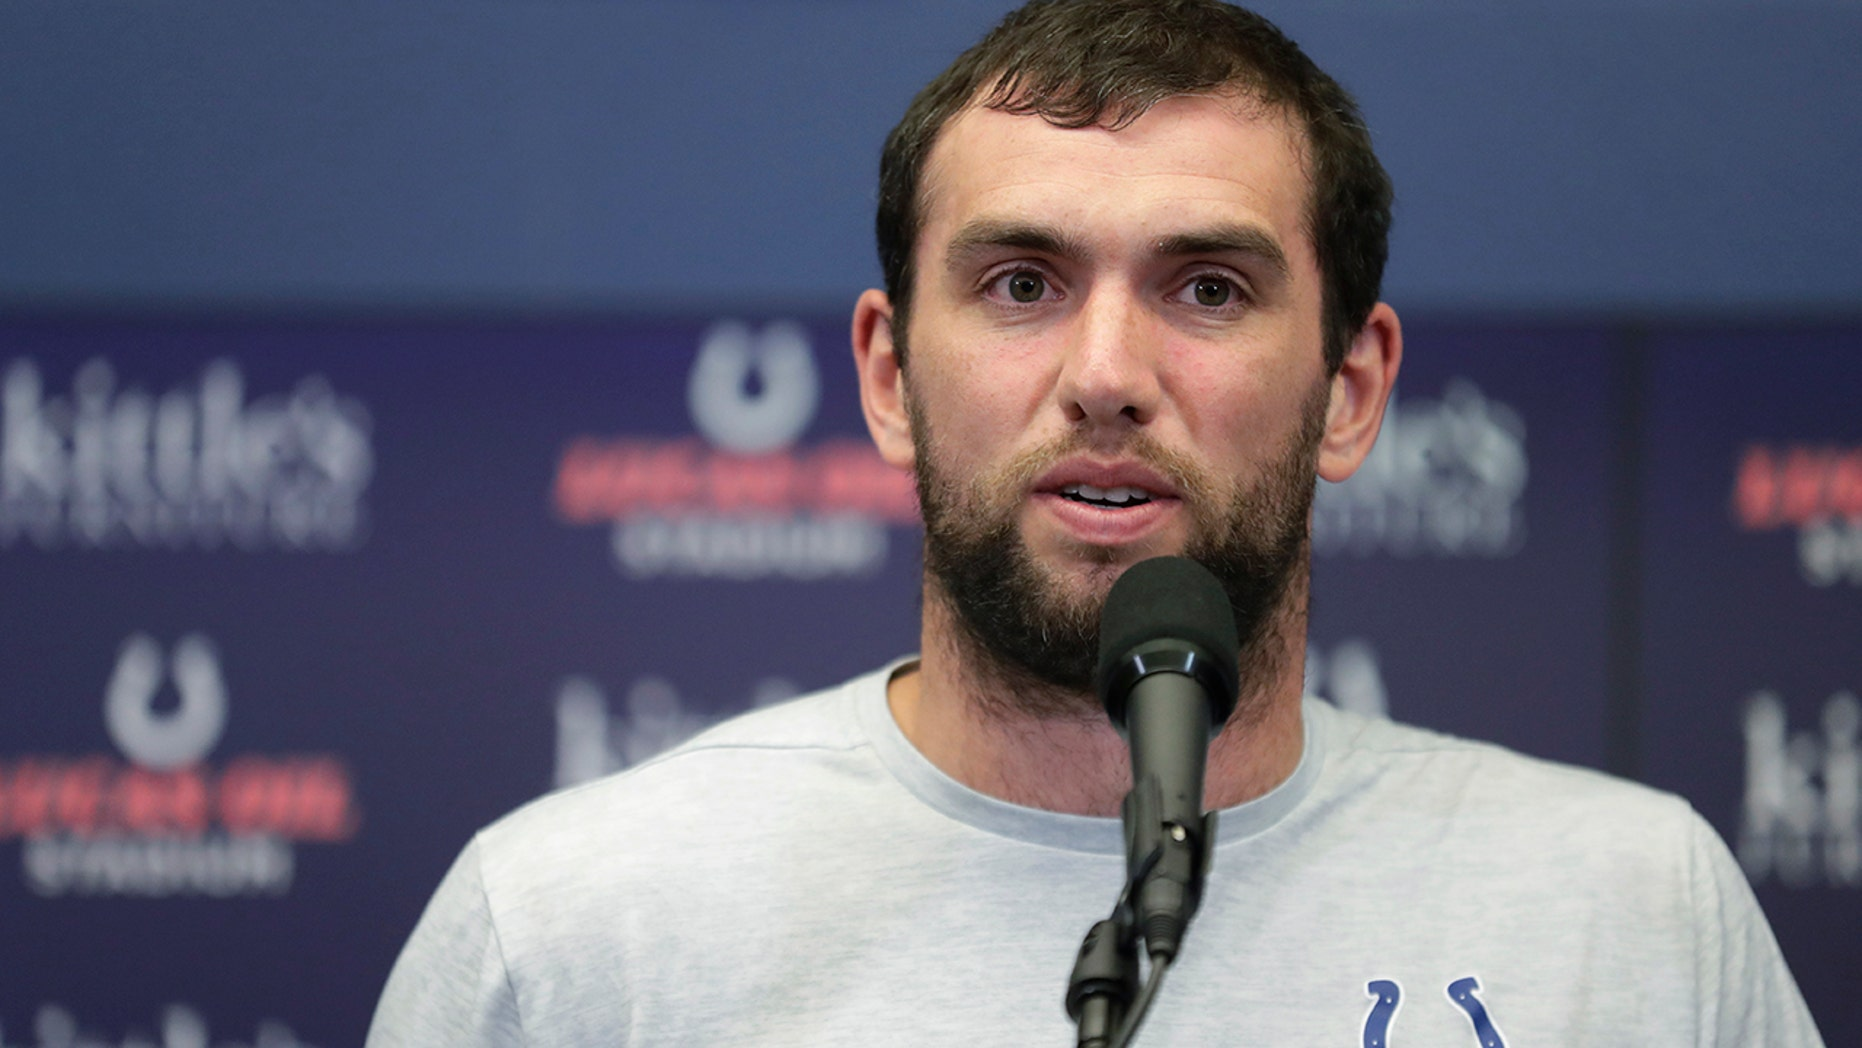 Indianapolis Colts quarterback Andrew Luck speaks during a news conference following the team's NFL preseason football game against the Chicago Bears, Saturday, Aug. 24, 2019, in Indianapolis. (AP Photo/Michael Conroy)